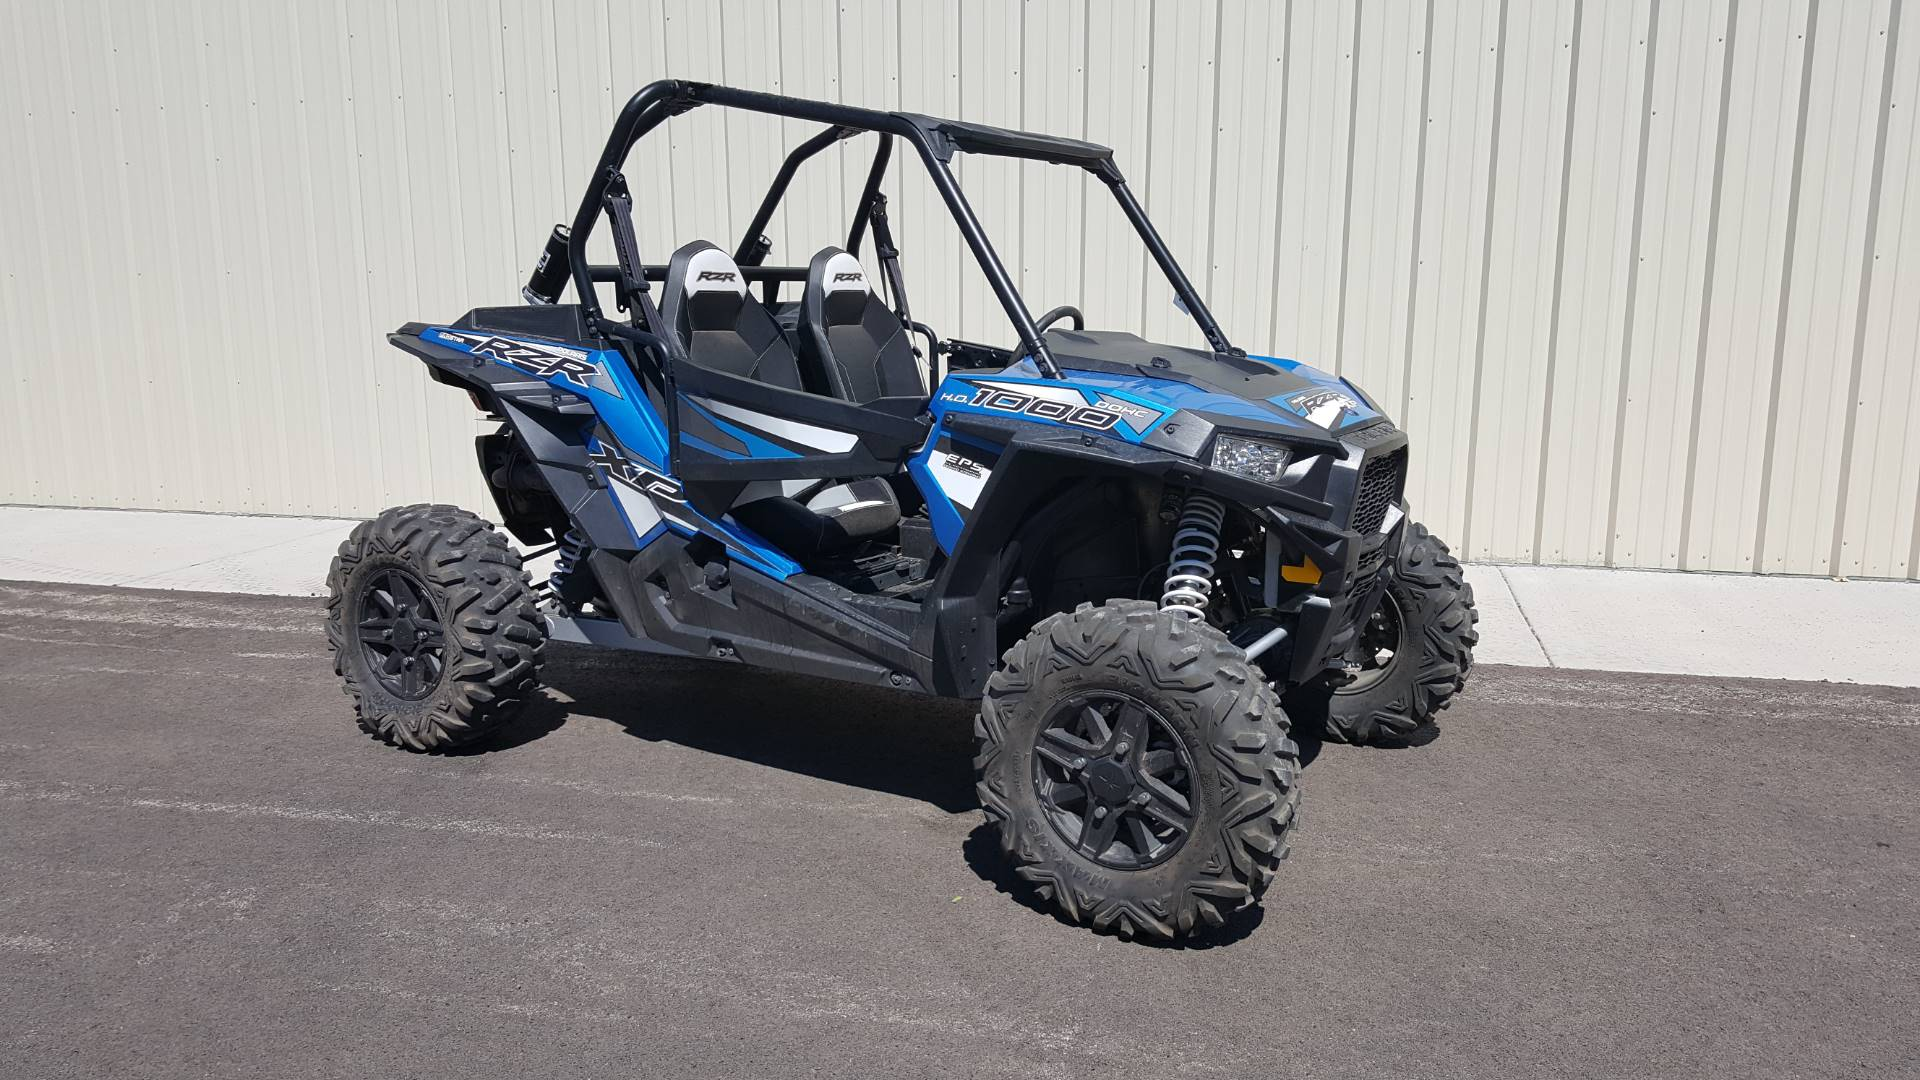 2016 Polaris RZR XP 1000 EPS 1